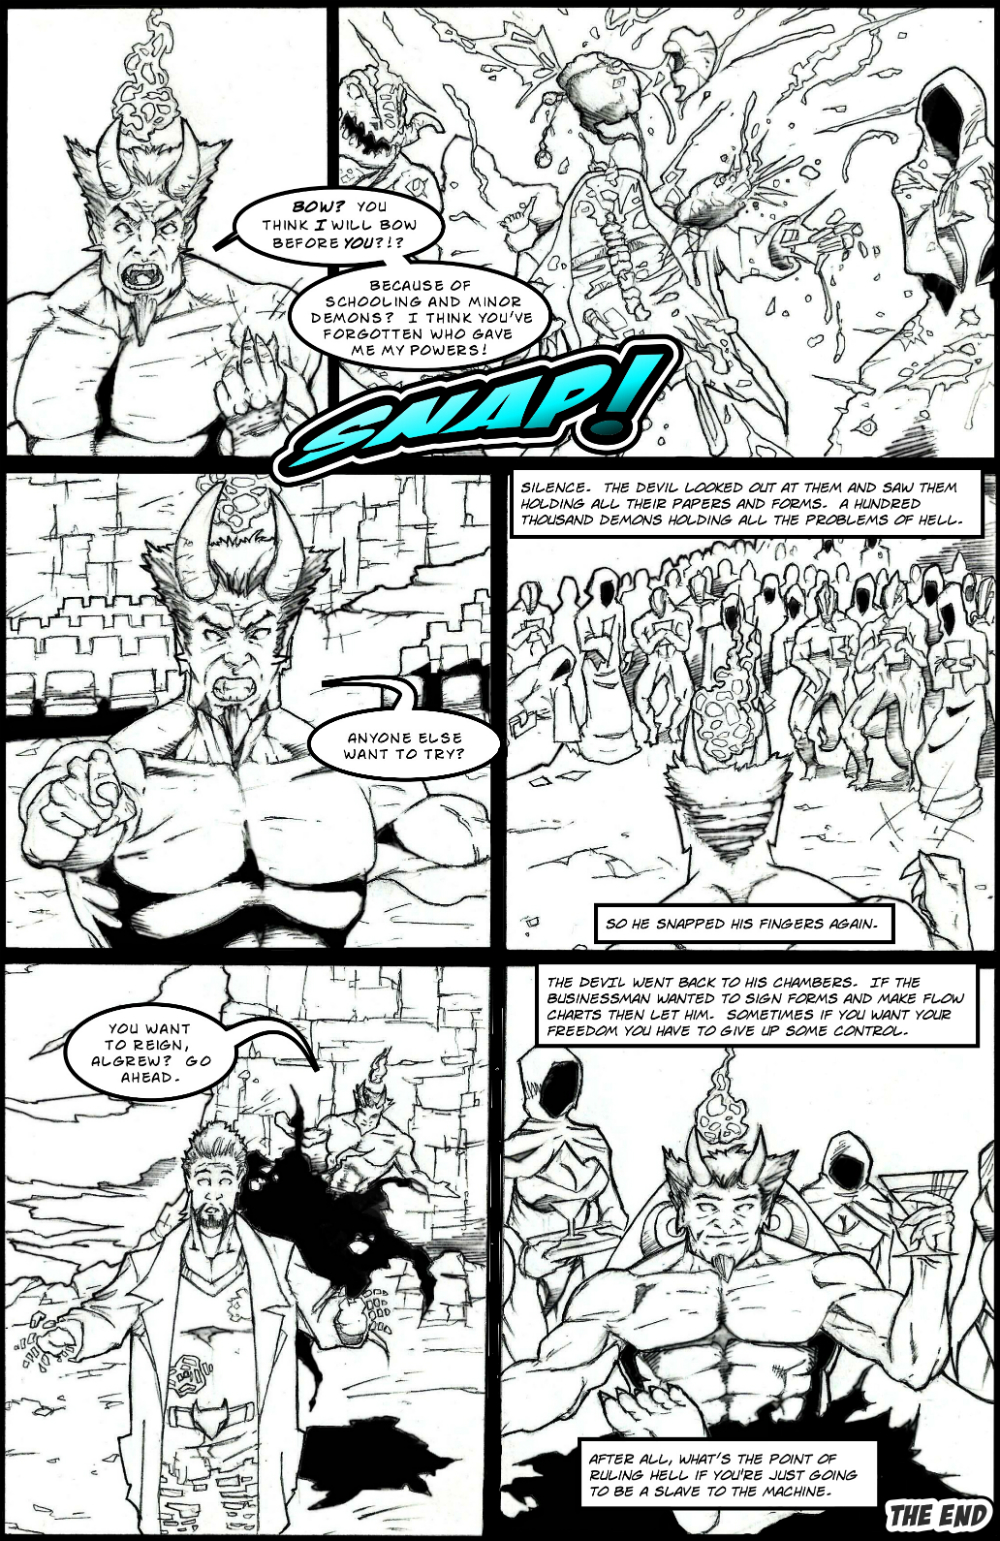 BUSINESSMAN IN HELL page 6 - story 4 in The Book of Lies